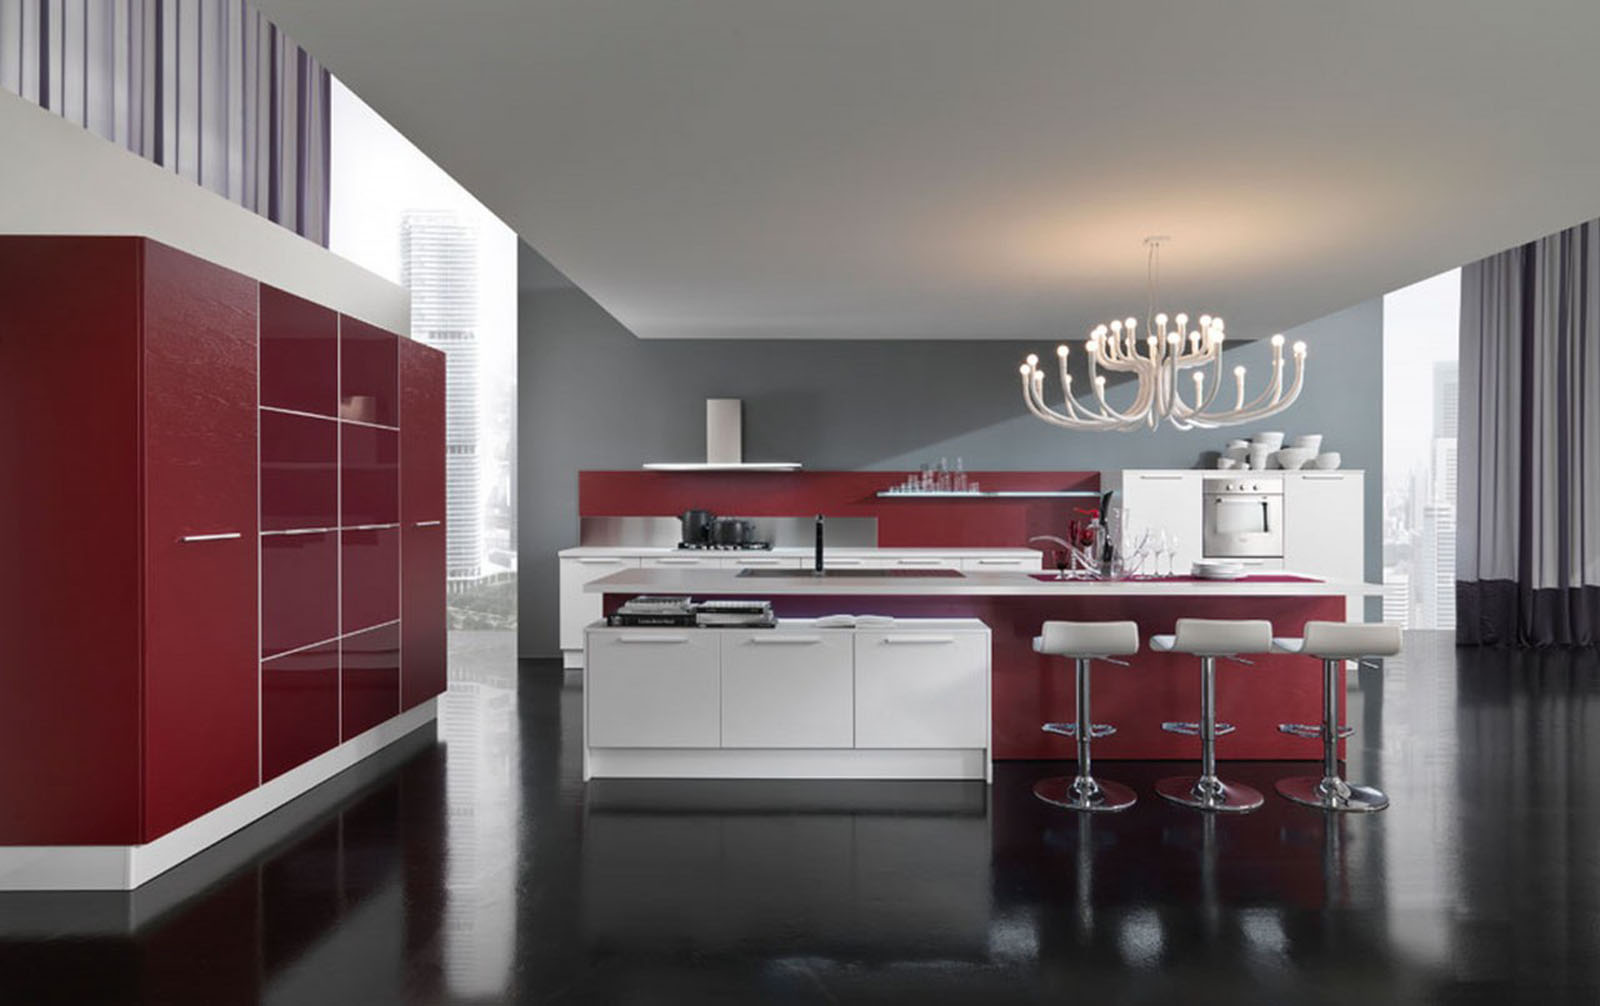 Parallel Kitche Floor Plans with Cabinet and Island Completed with Creative Coloring Scheme